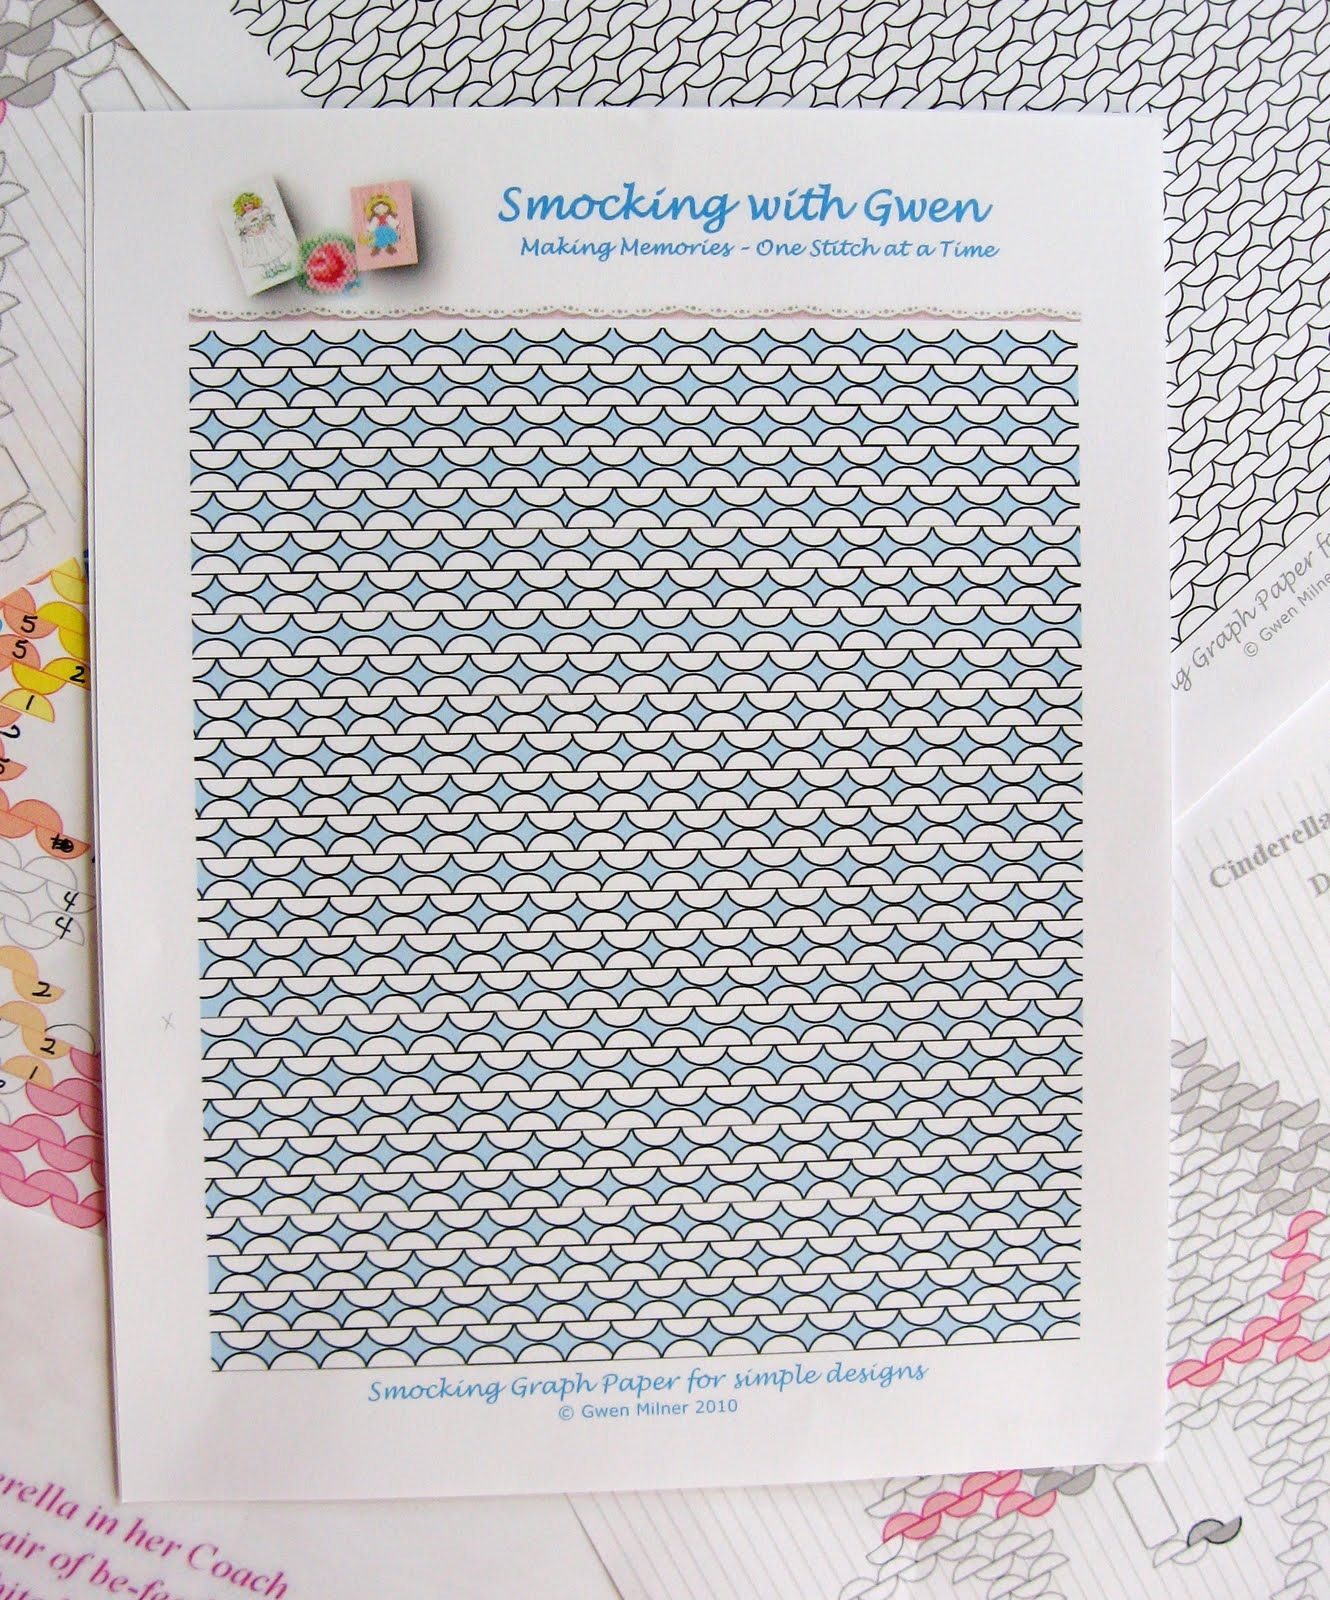 Smocking With Gwen Picture Smocking Graph Paper To Share